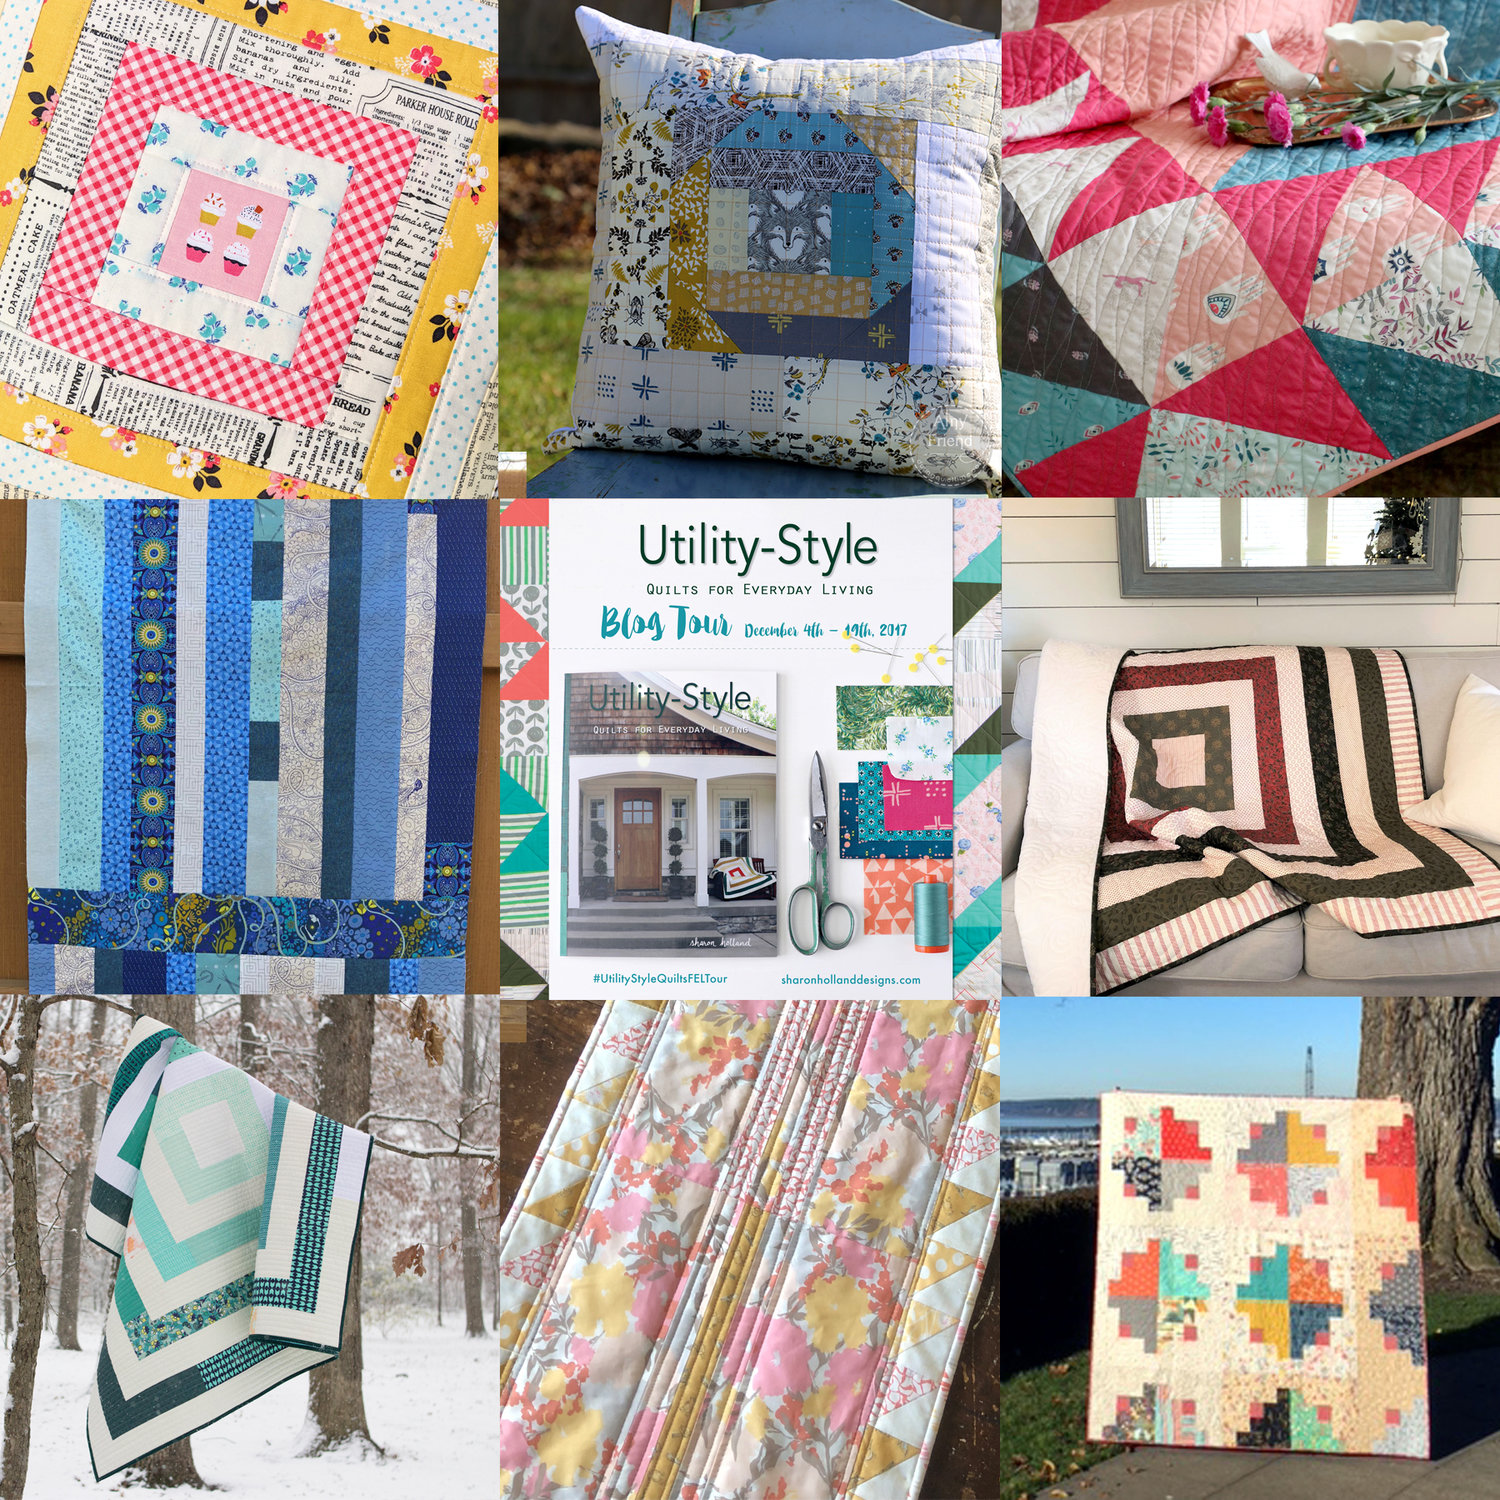 Utility Style Quilts for Everyday Living Blog Tour Recap Part 1